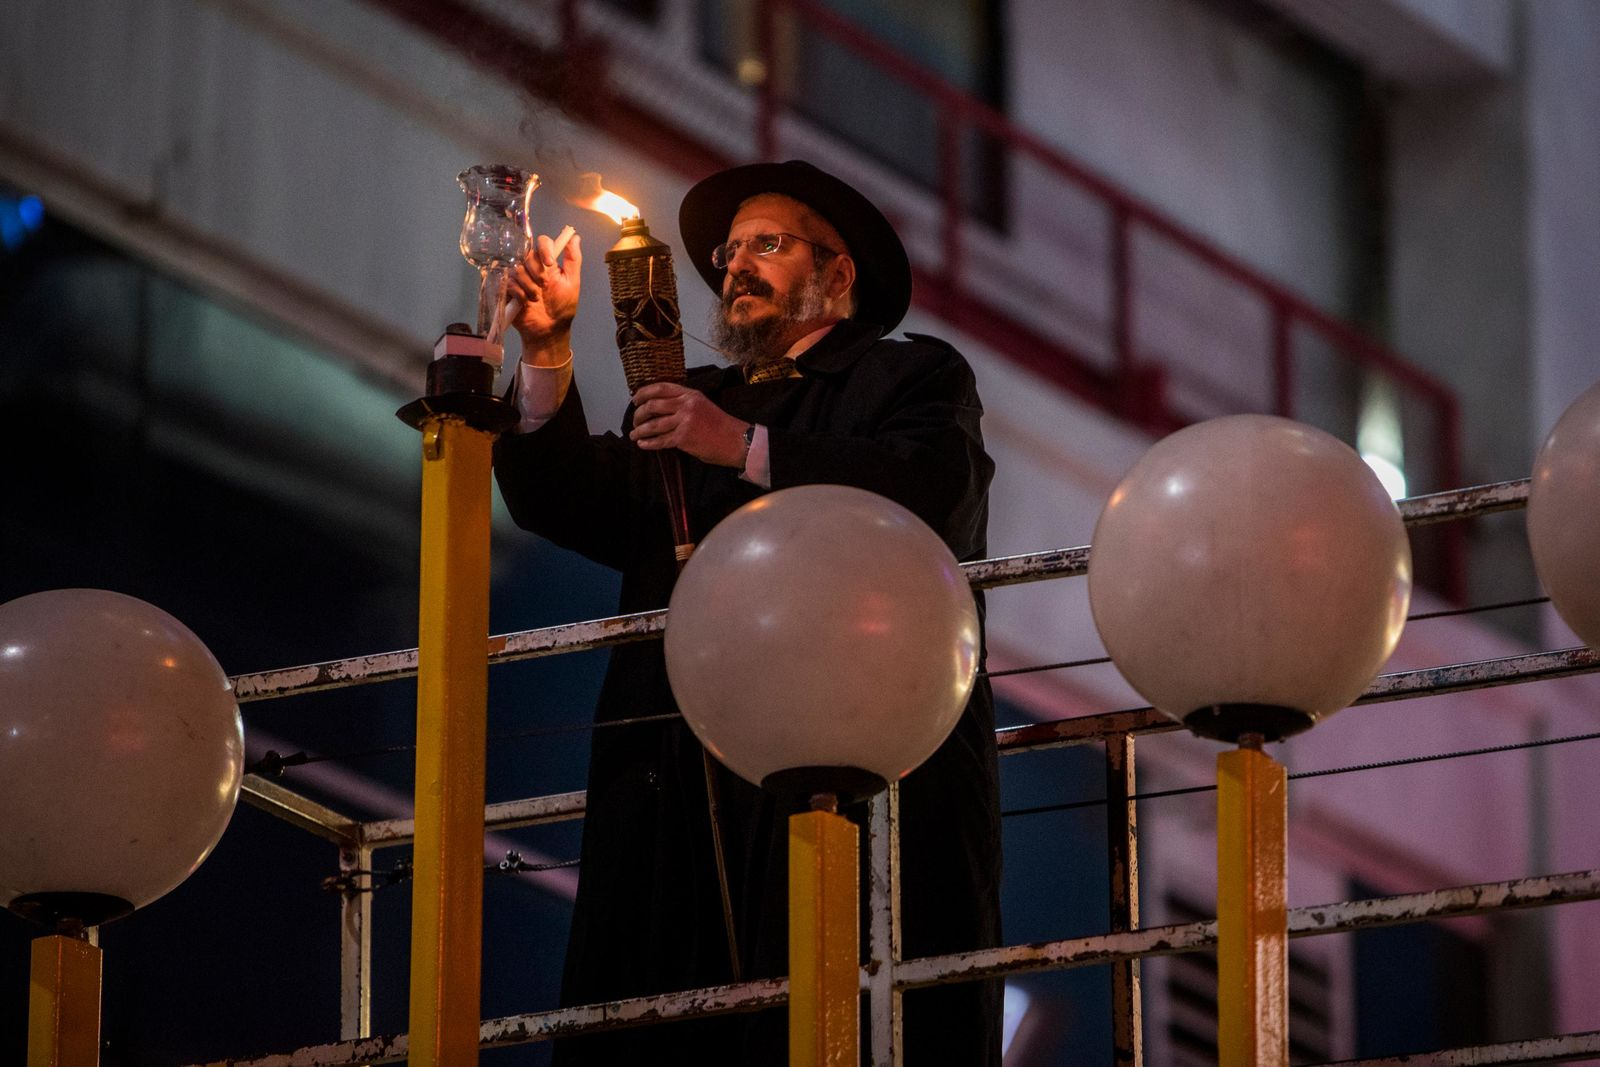 Rabbi Shea Harlig lights the Grand Menorah in downtown Las Vegas on Sunday, Dec. 2. The Grand Menorah will remain on display throughout the Hanukkah season. CREDIT: Joe Buglewicz/Las Vegas News Bureau